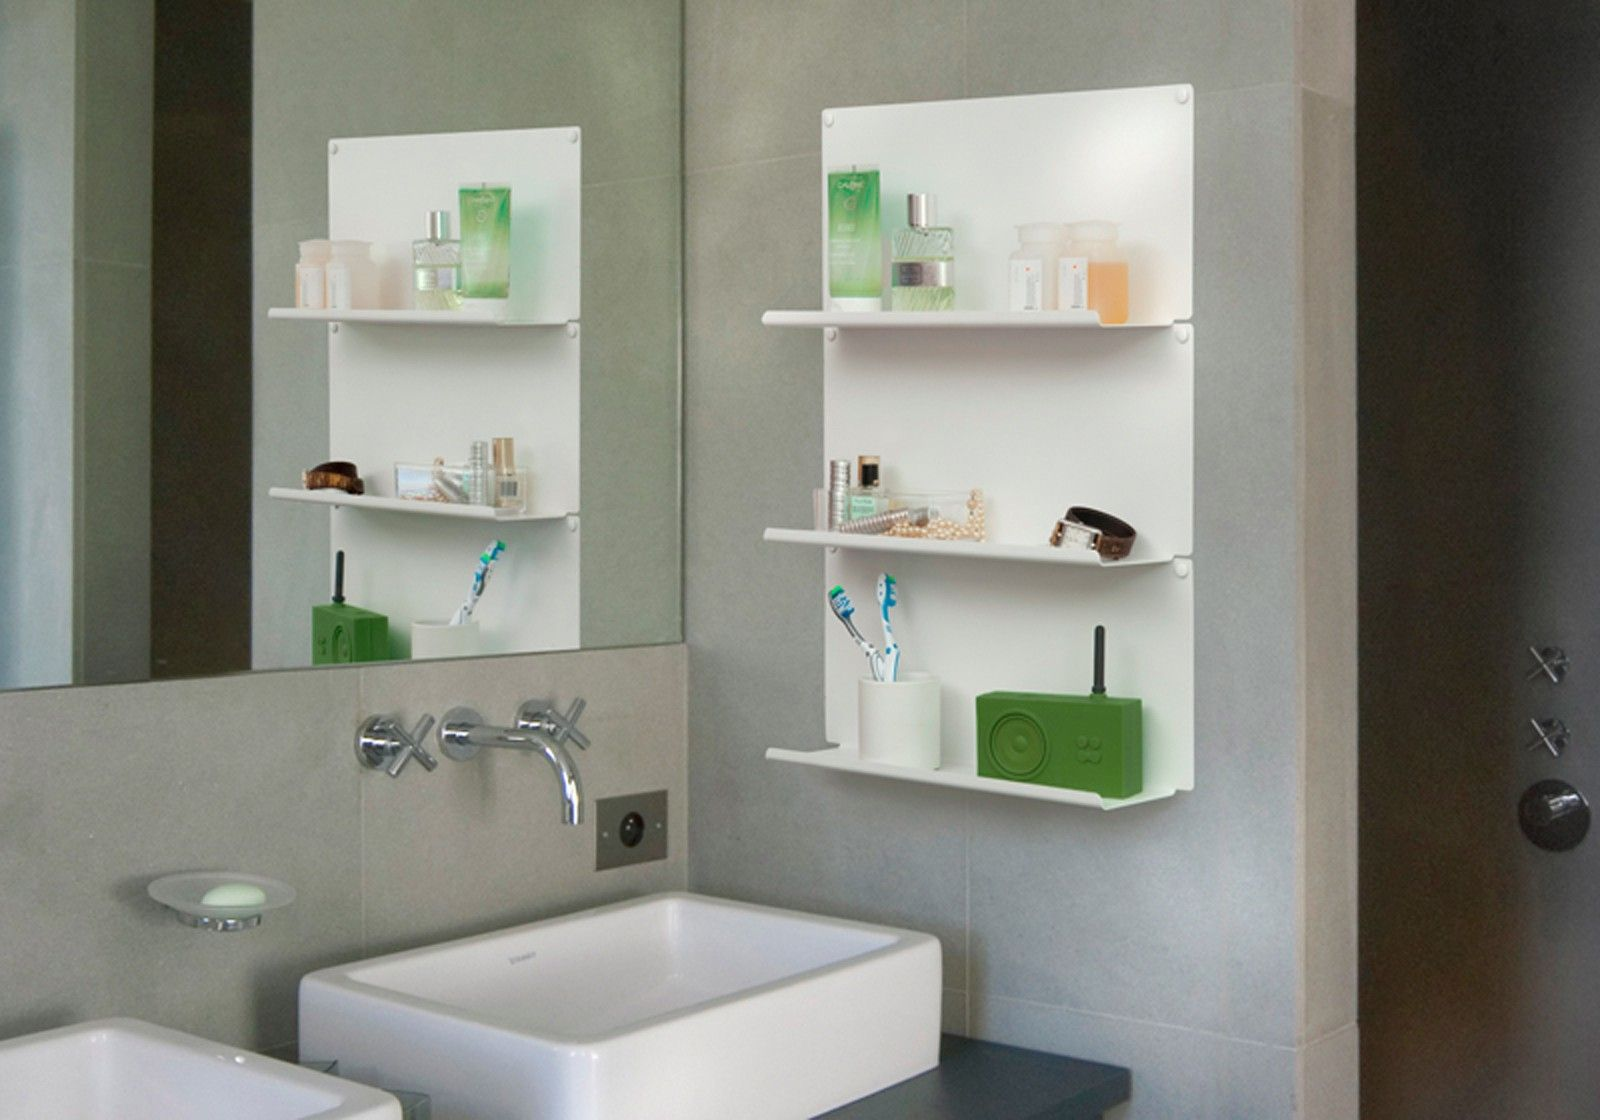 Innovative Bathroom Shelves On Bathroom Shelf With Towel Bar Pictures To Pin On